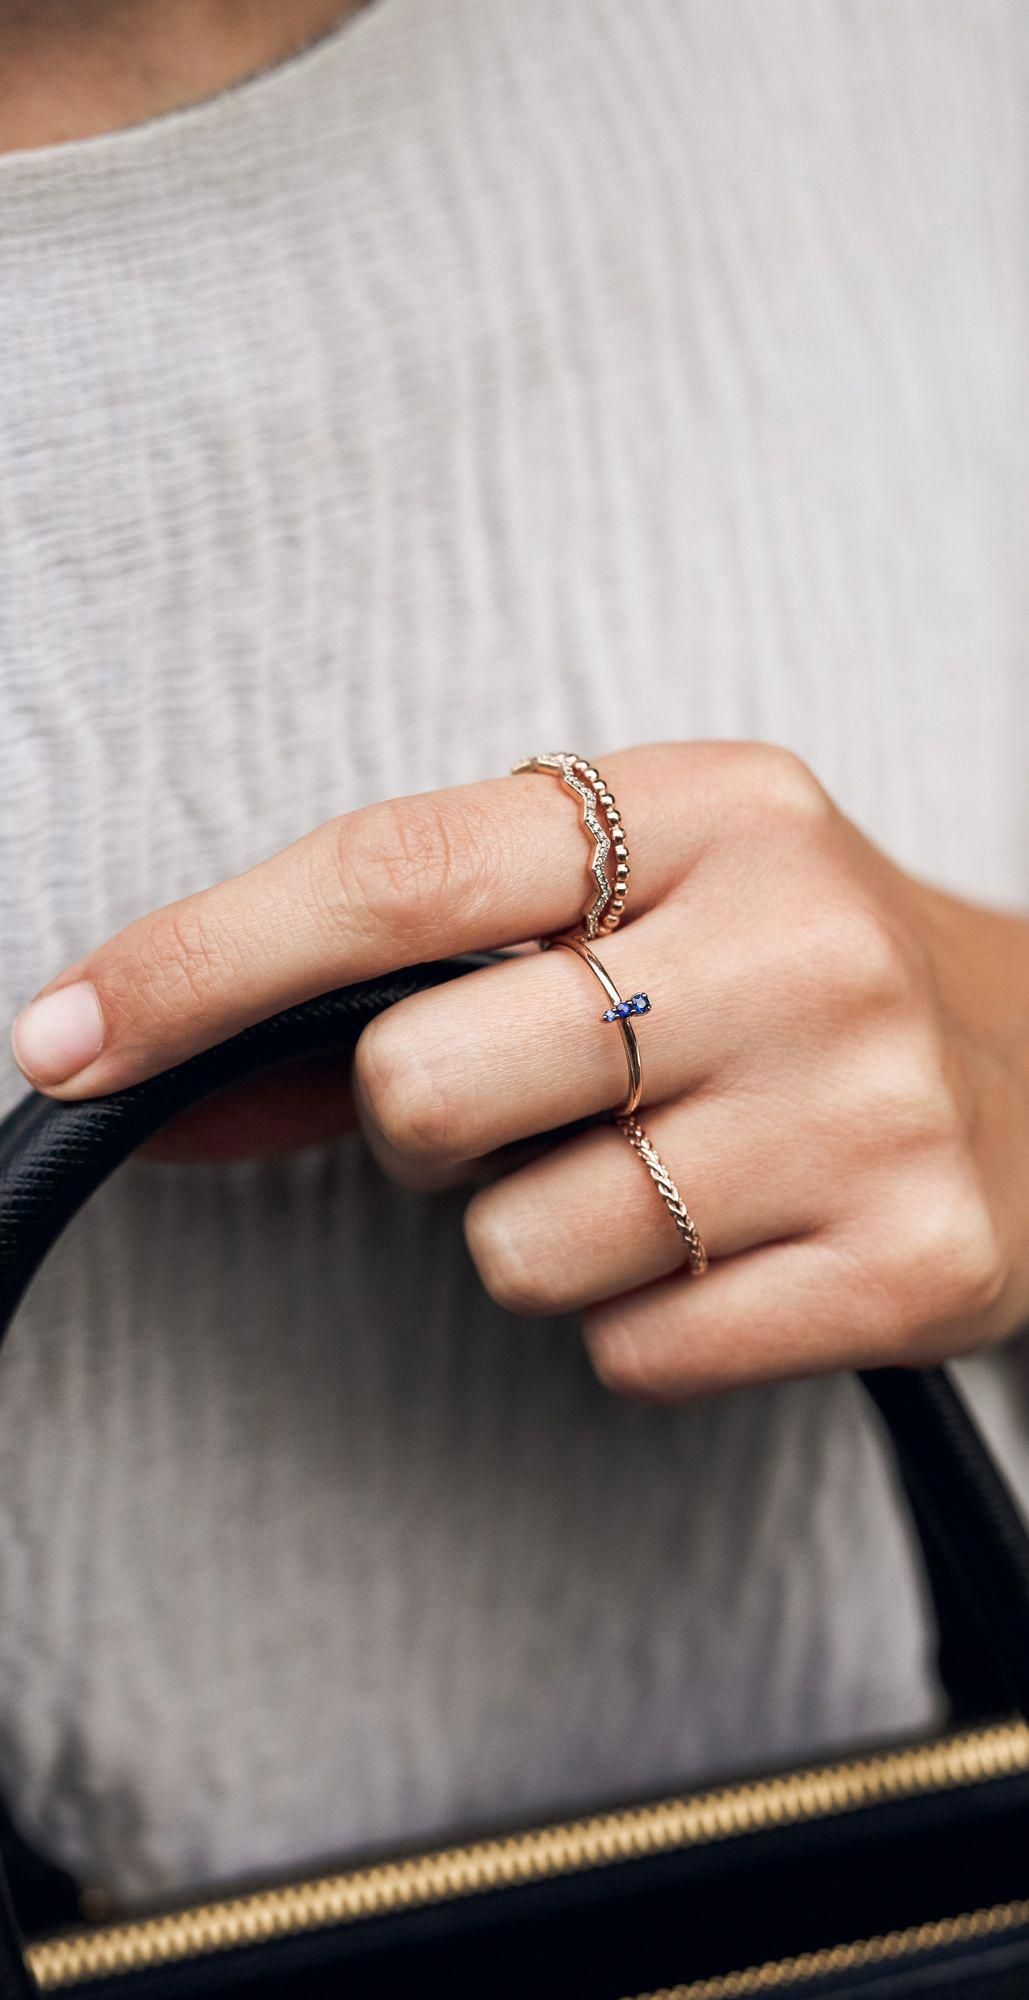 By designing your own ring you are normally decreasing the